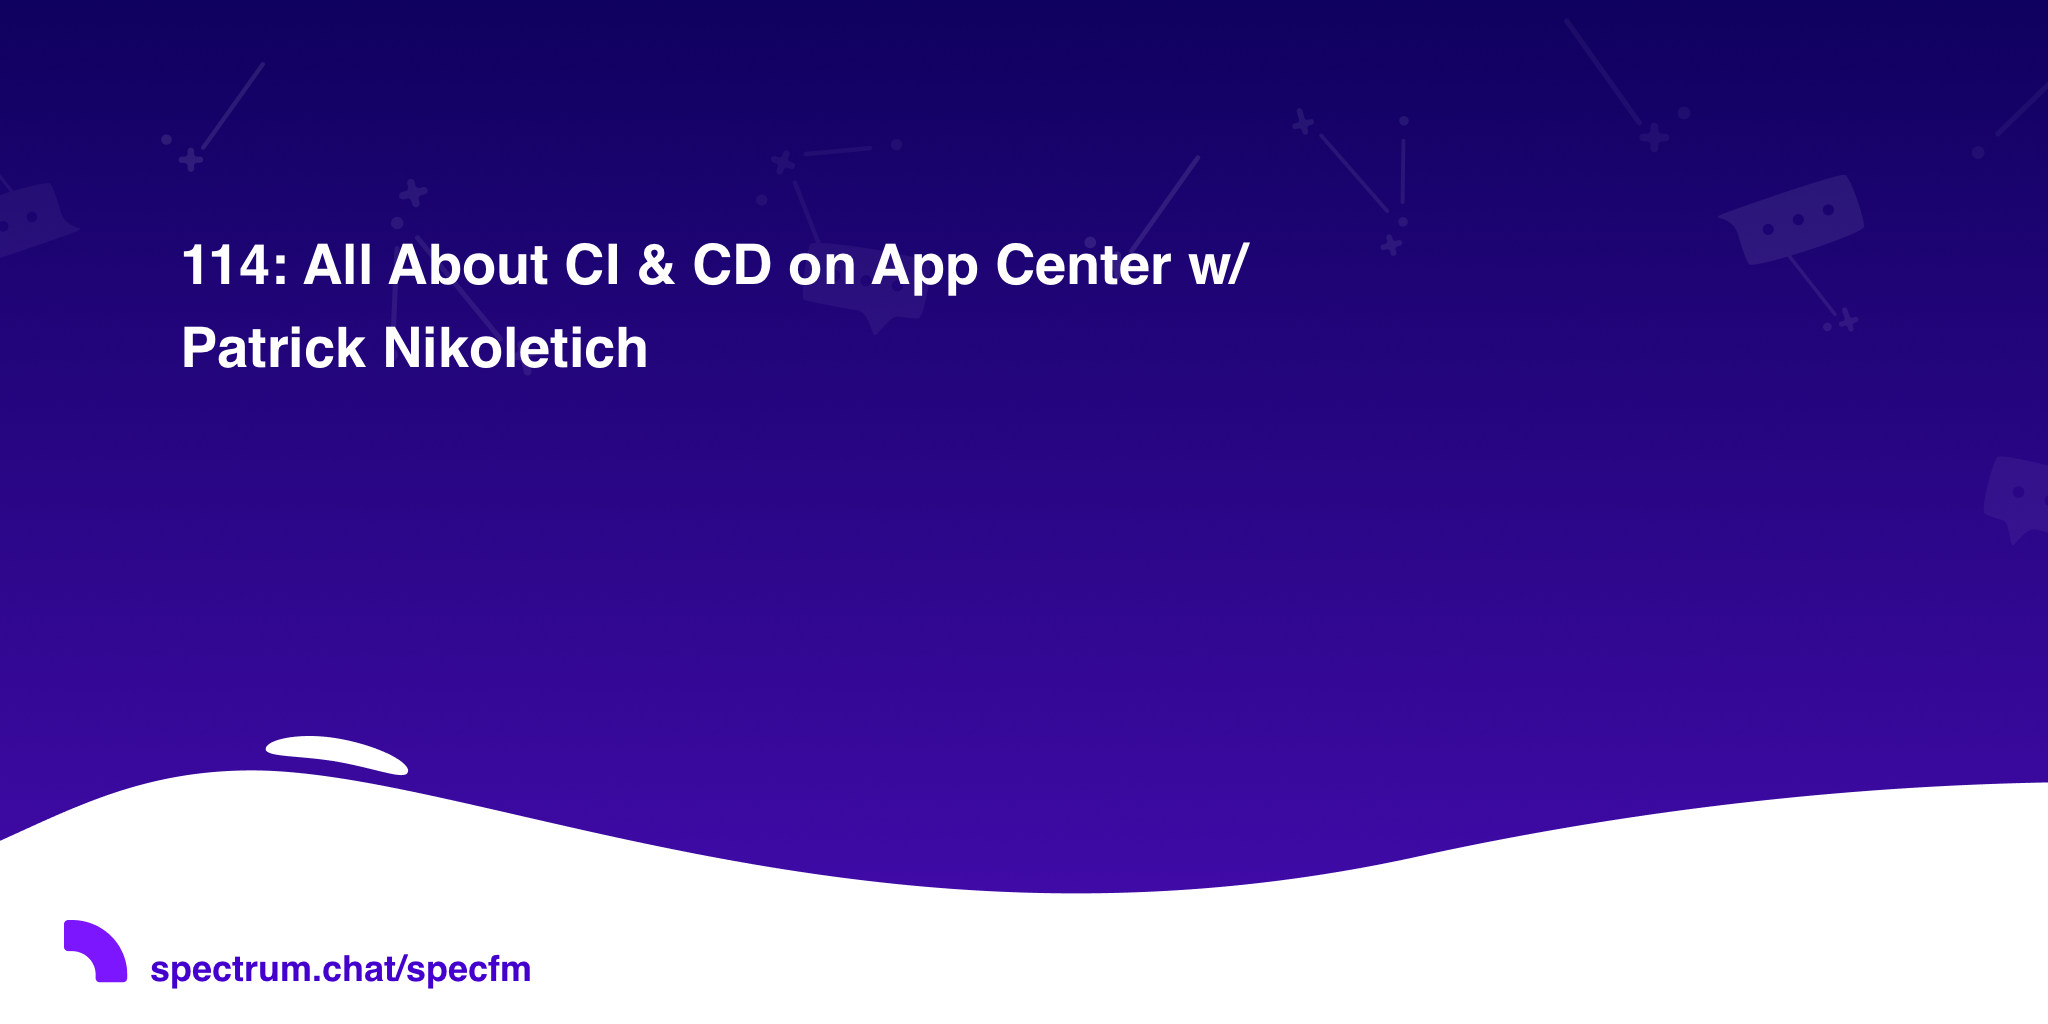 114: All About CI & CD on App Center w/ Patrick Nikoletich